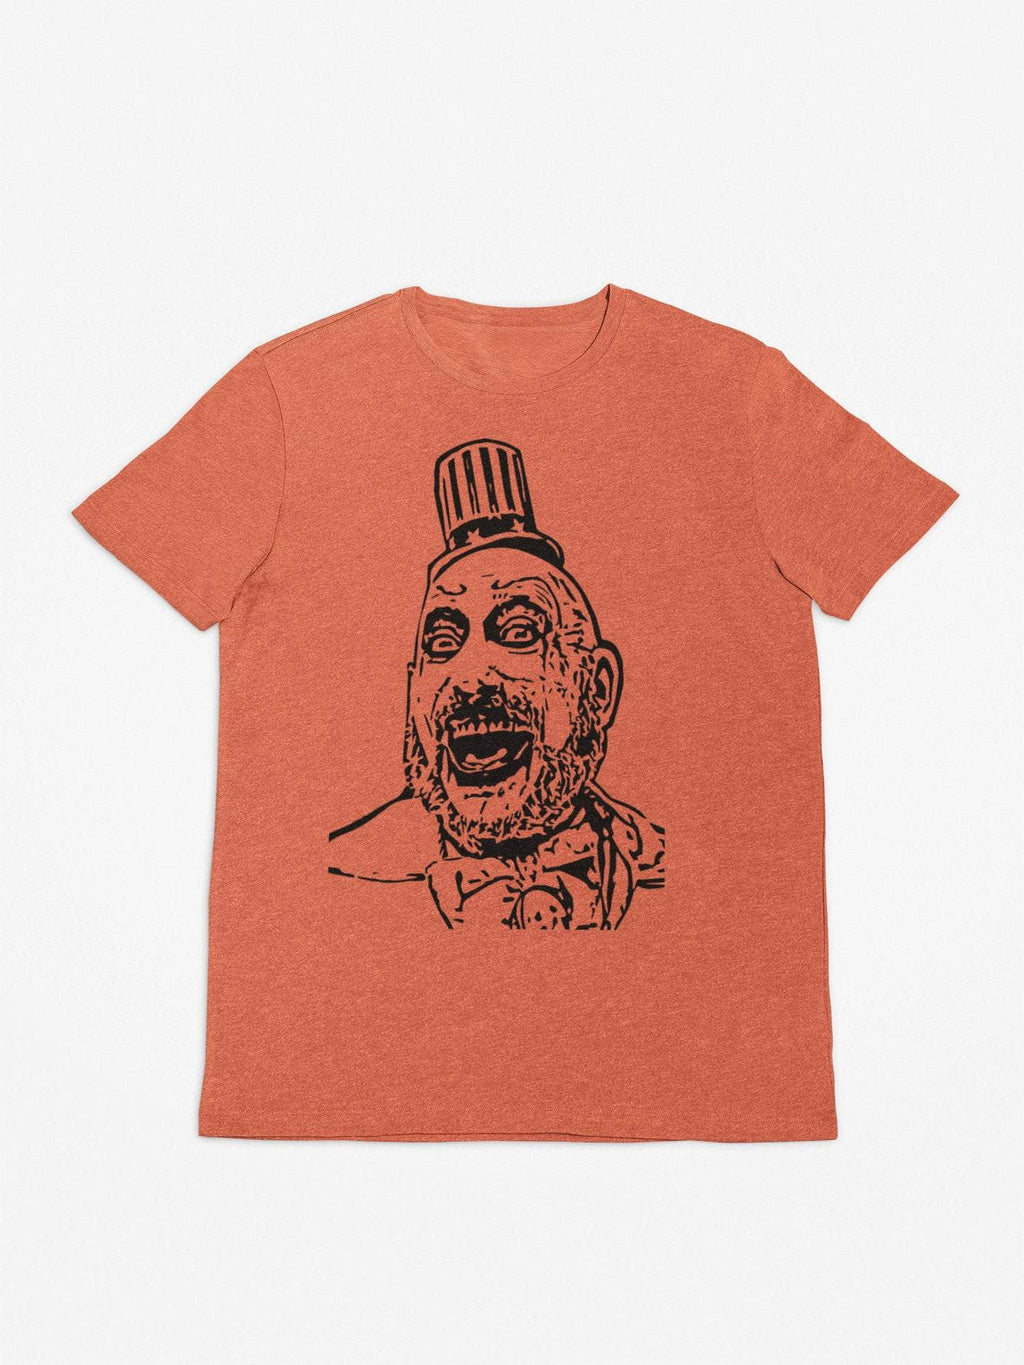 House of 1000 Corpses Movie - Captain Spaulding - Sid Haig - Rob Zombie Funny Unisex T-Shirt